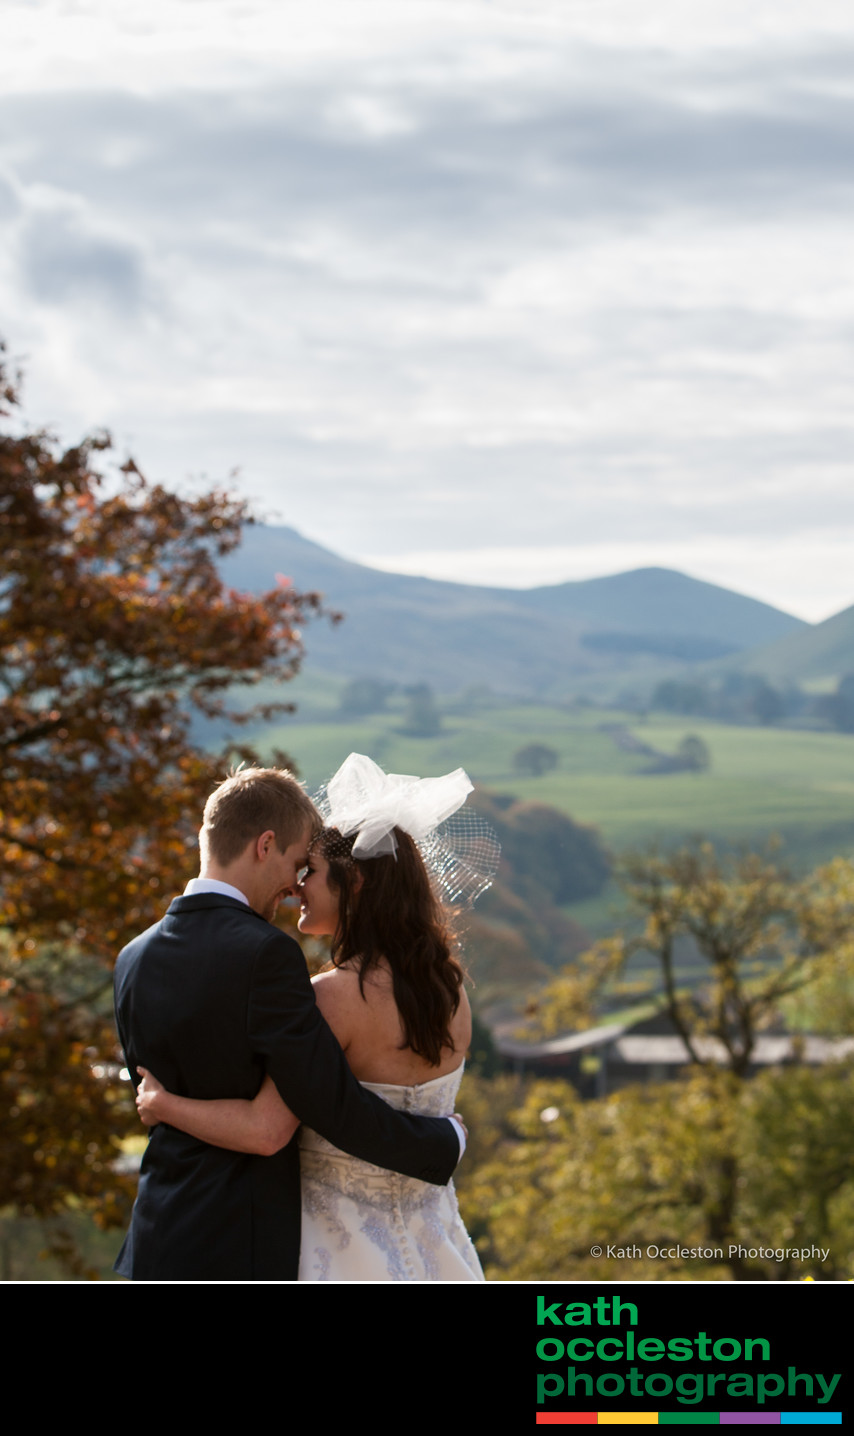 Wedding bliss in the Yorkshire Dales